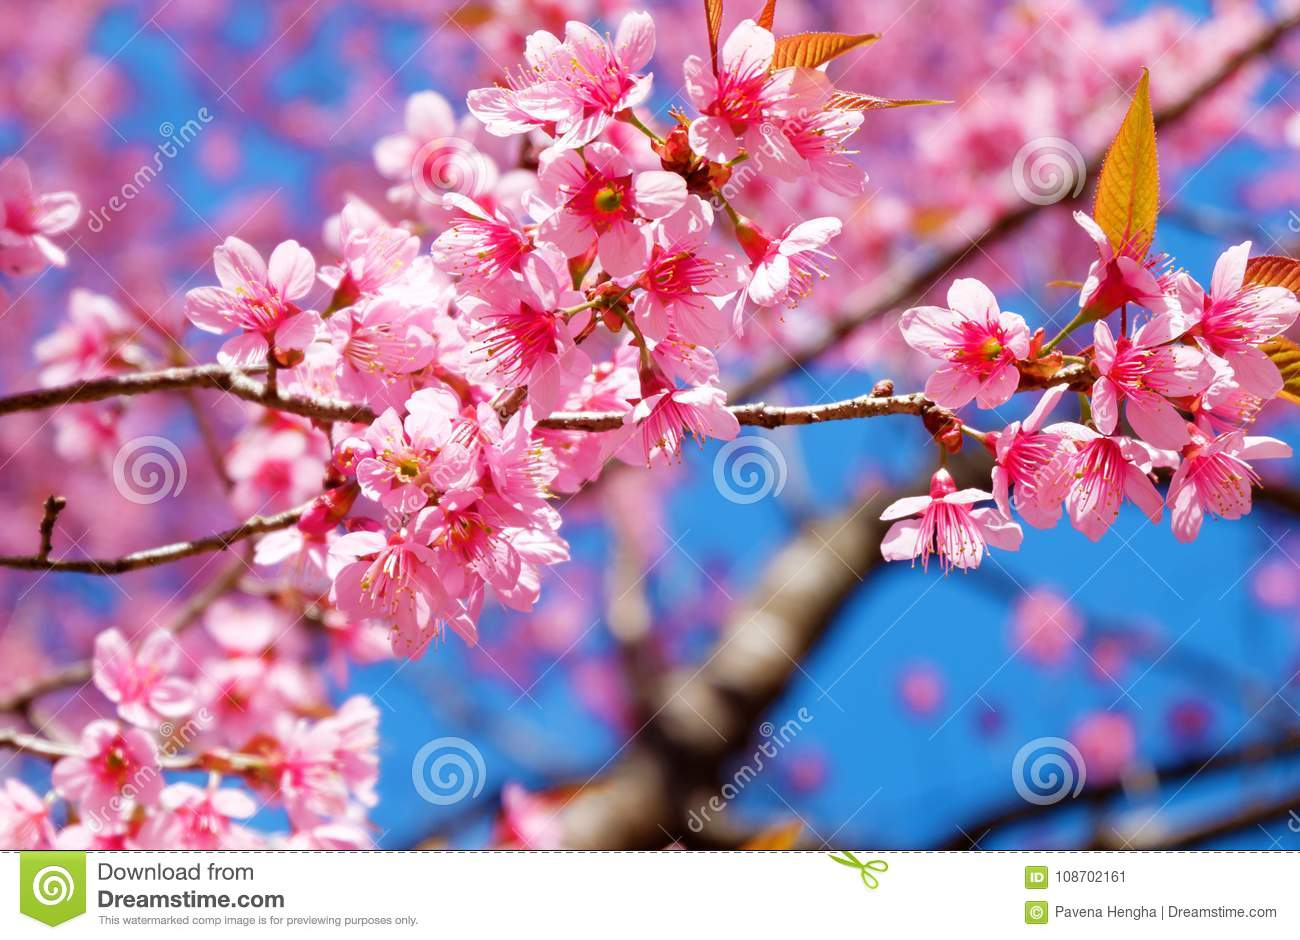 Beautiful cherry blossom pink sakura flower with blue sky in spring download beautiful cherry blossom pink sakura flower with blue sky in spring stock image mightylinksfo